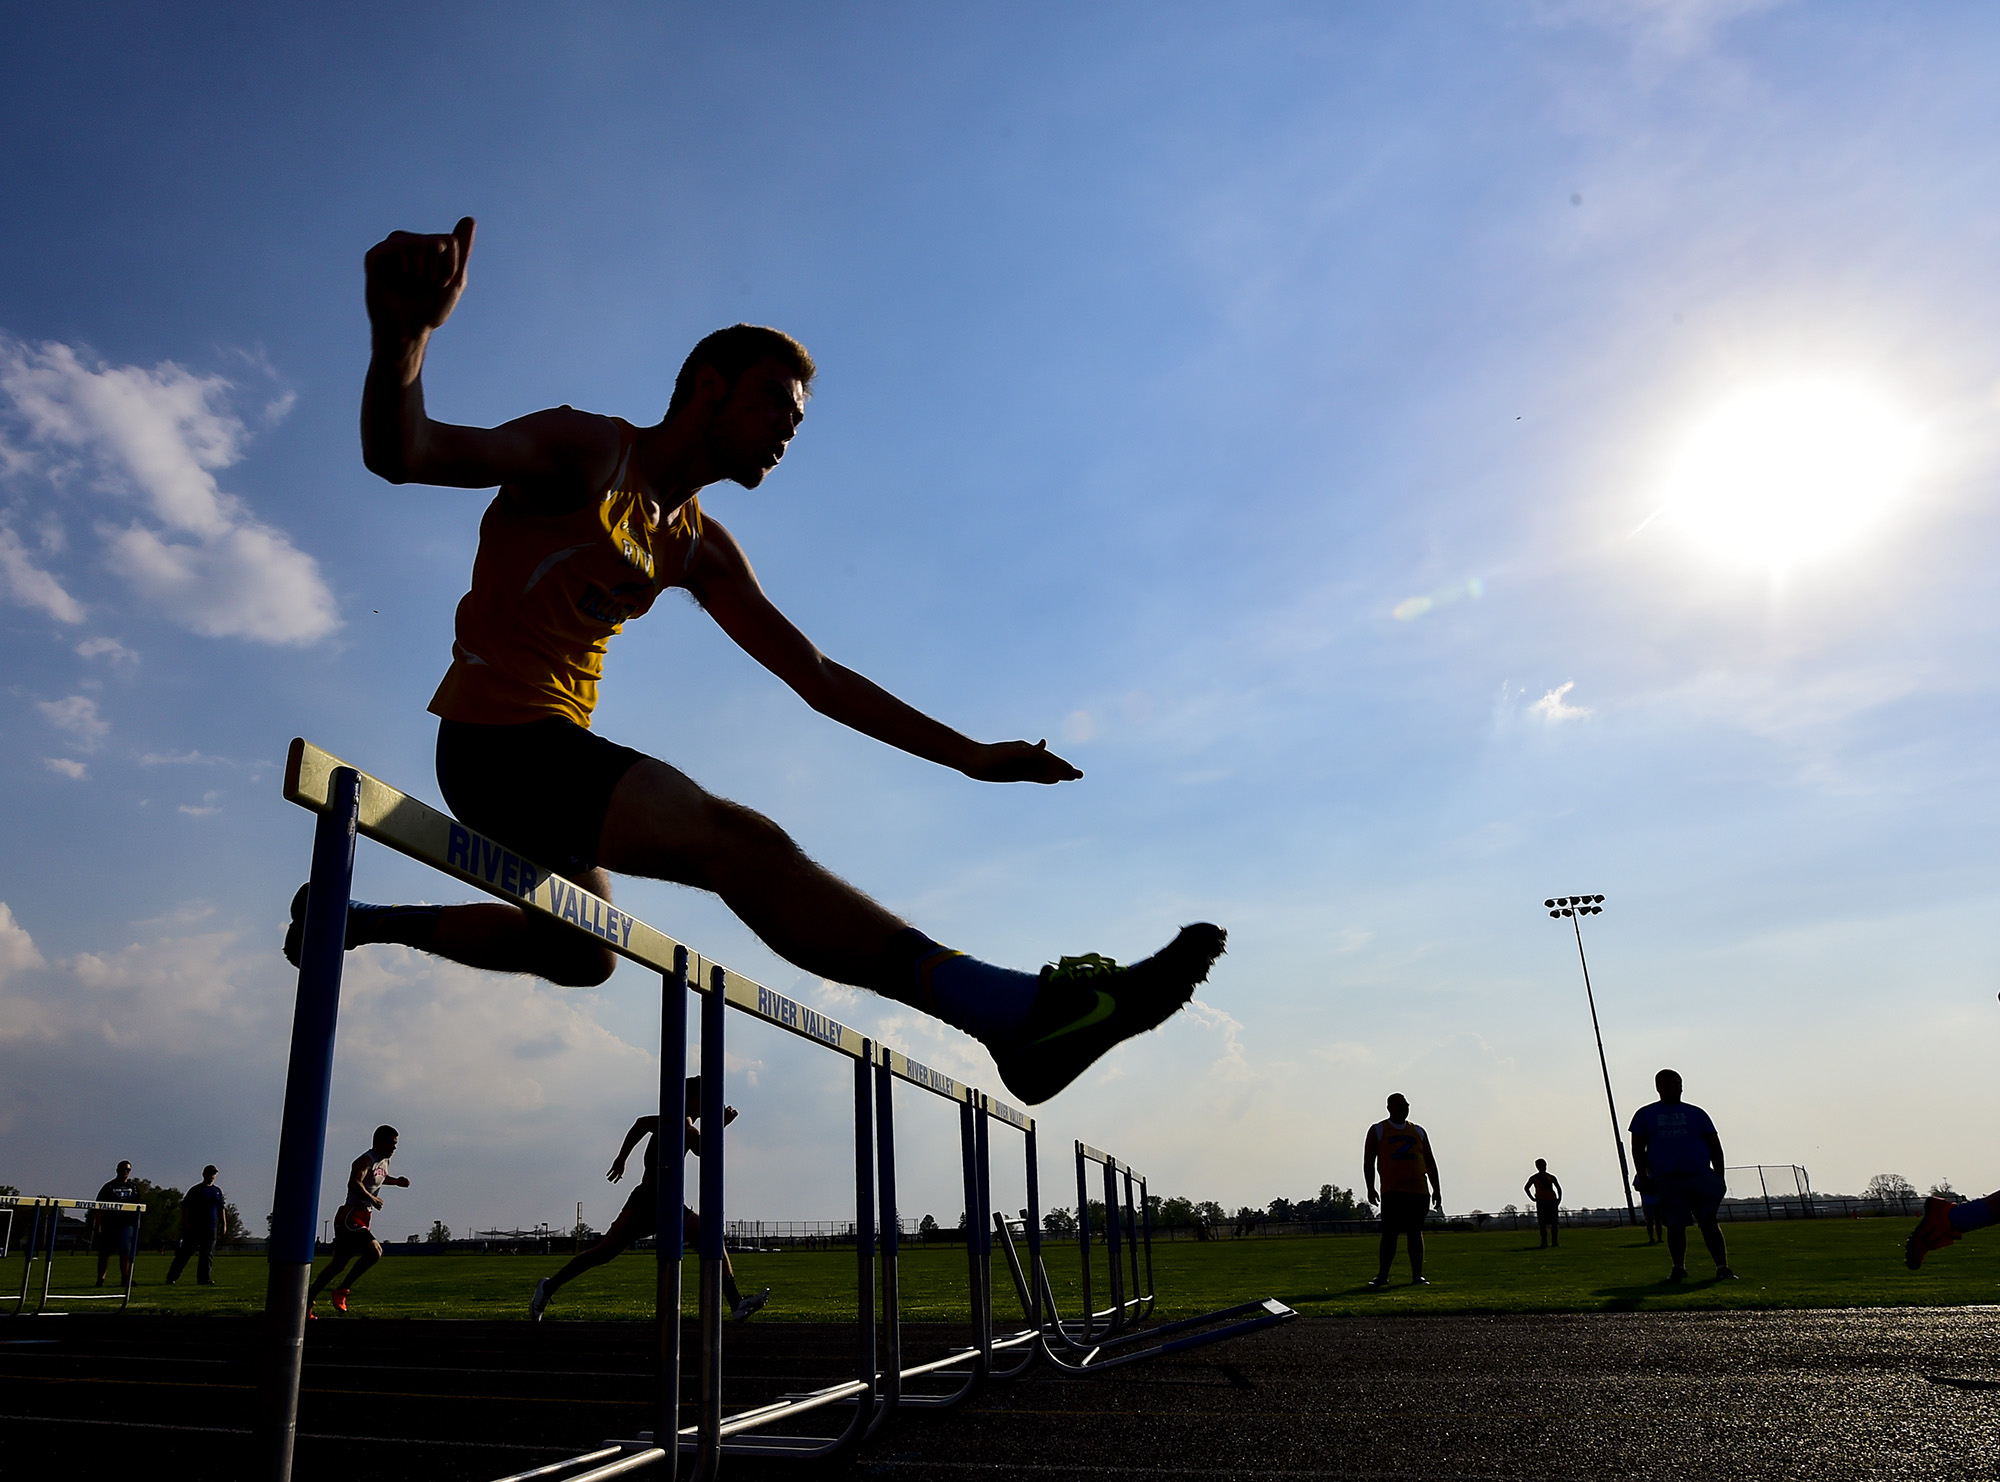 A hurdler bounds over a hurdle during the Marion County Track Meet hosted at River Valley high school on Wednesday, May 6